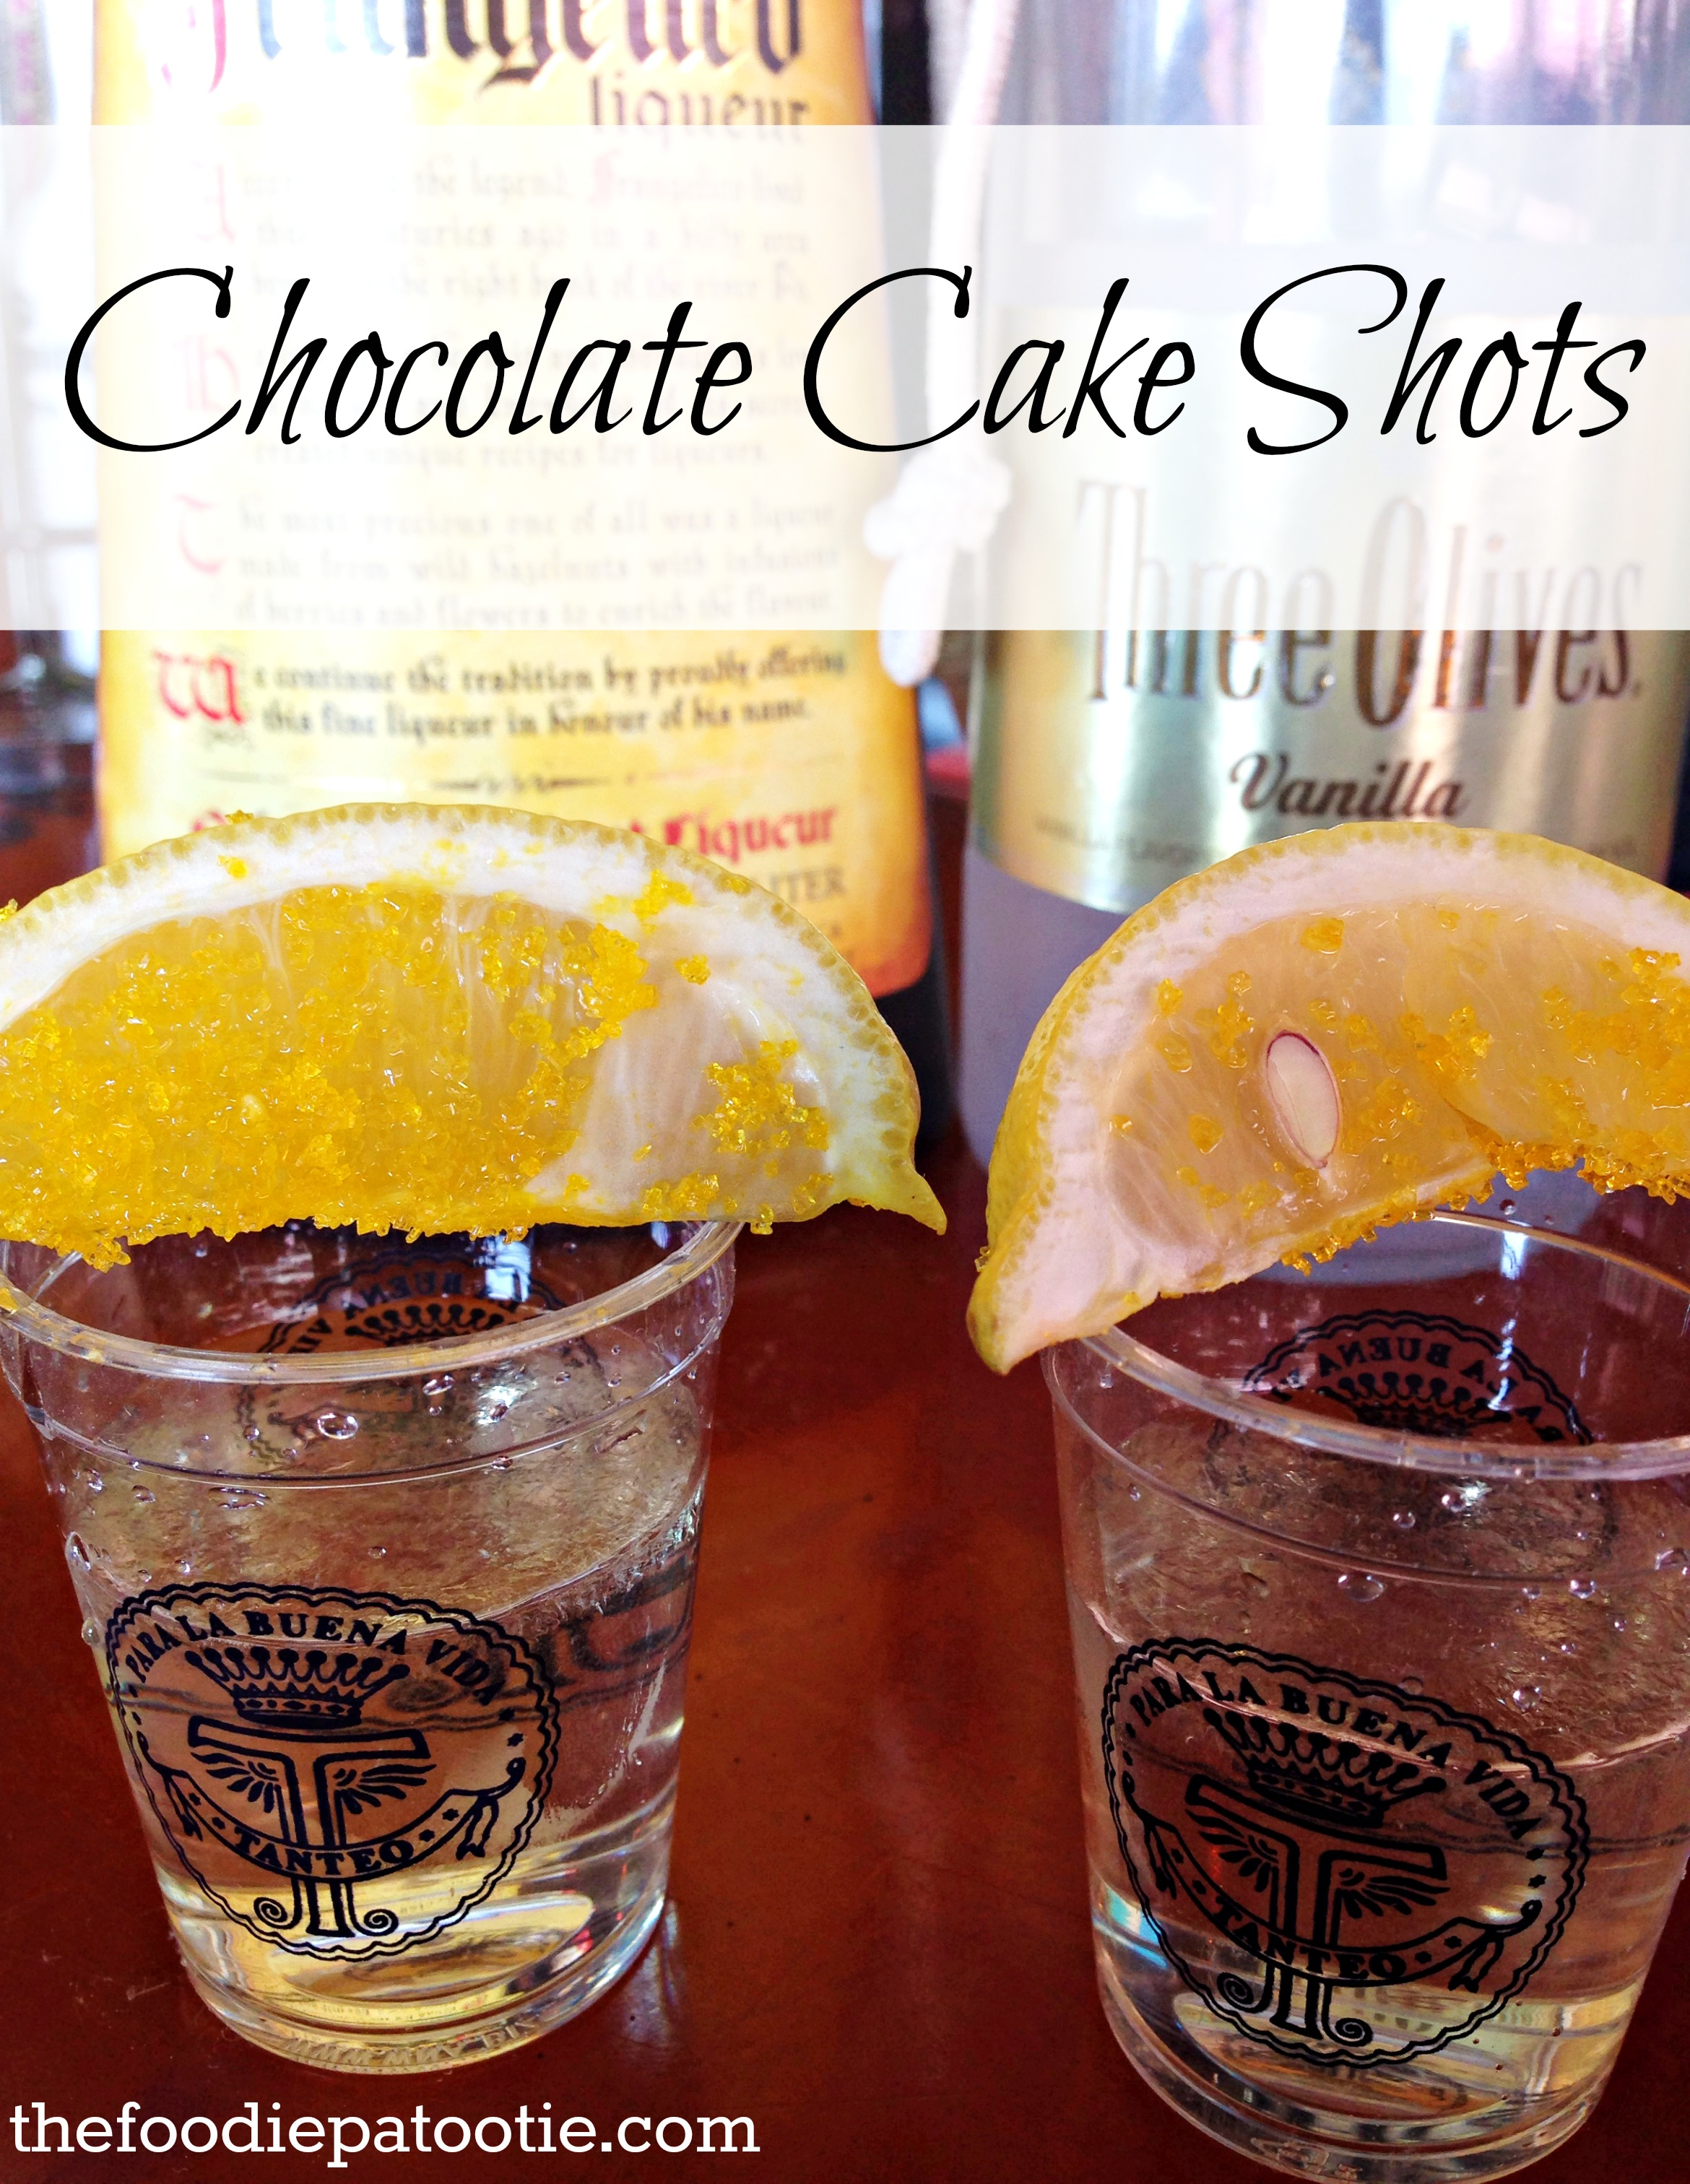 Chocolate Cake Shot